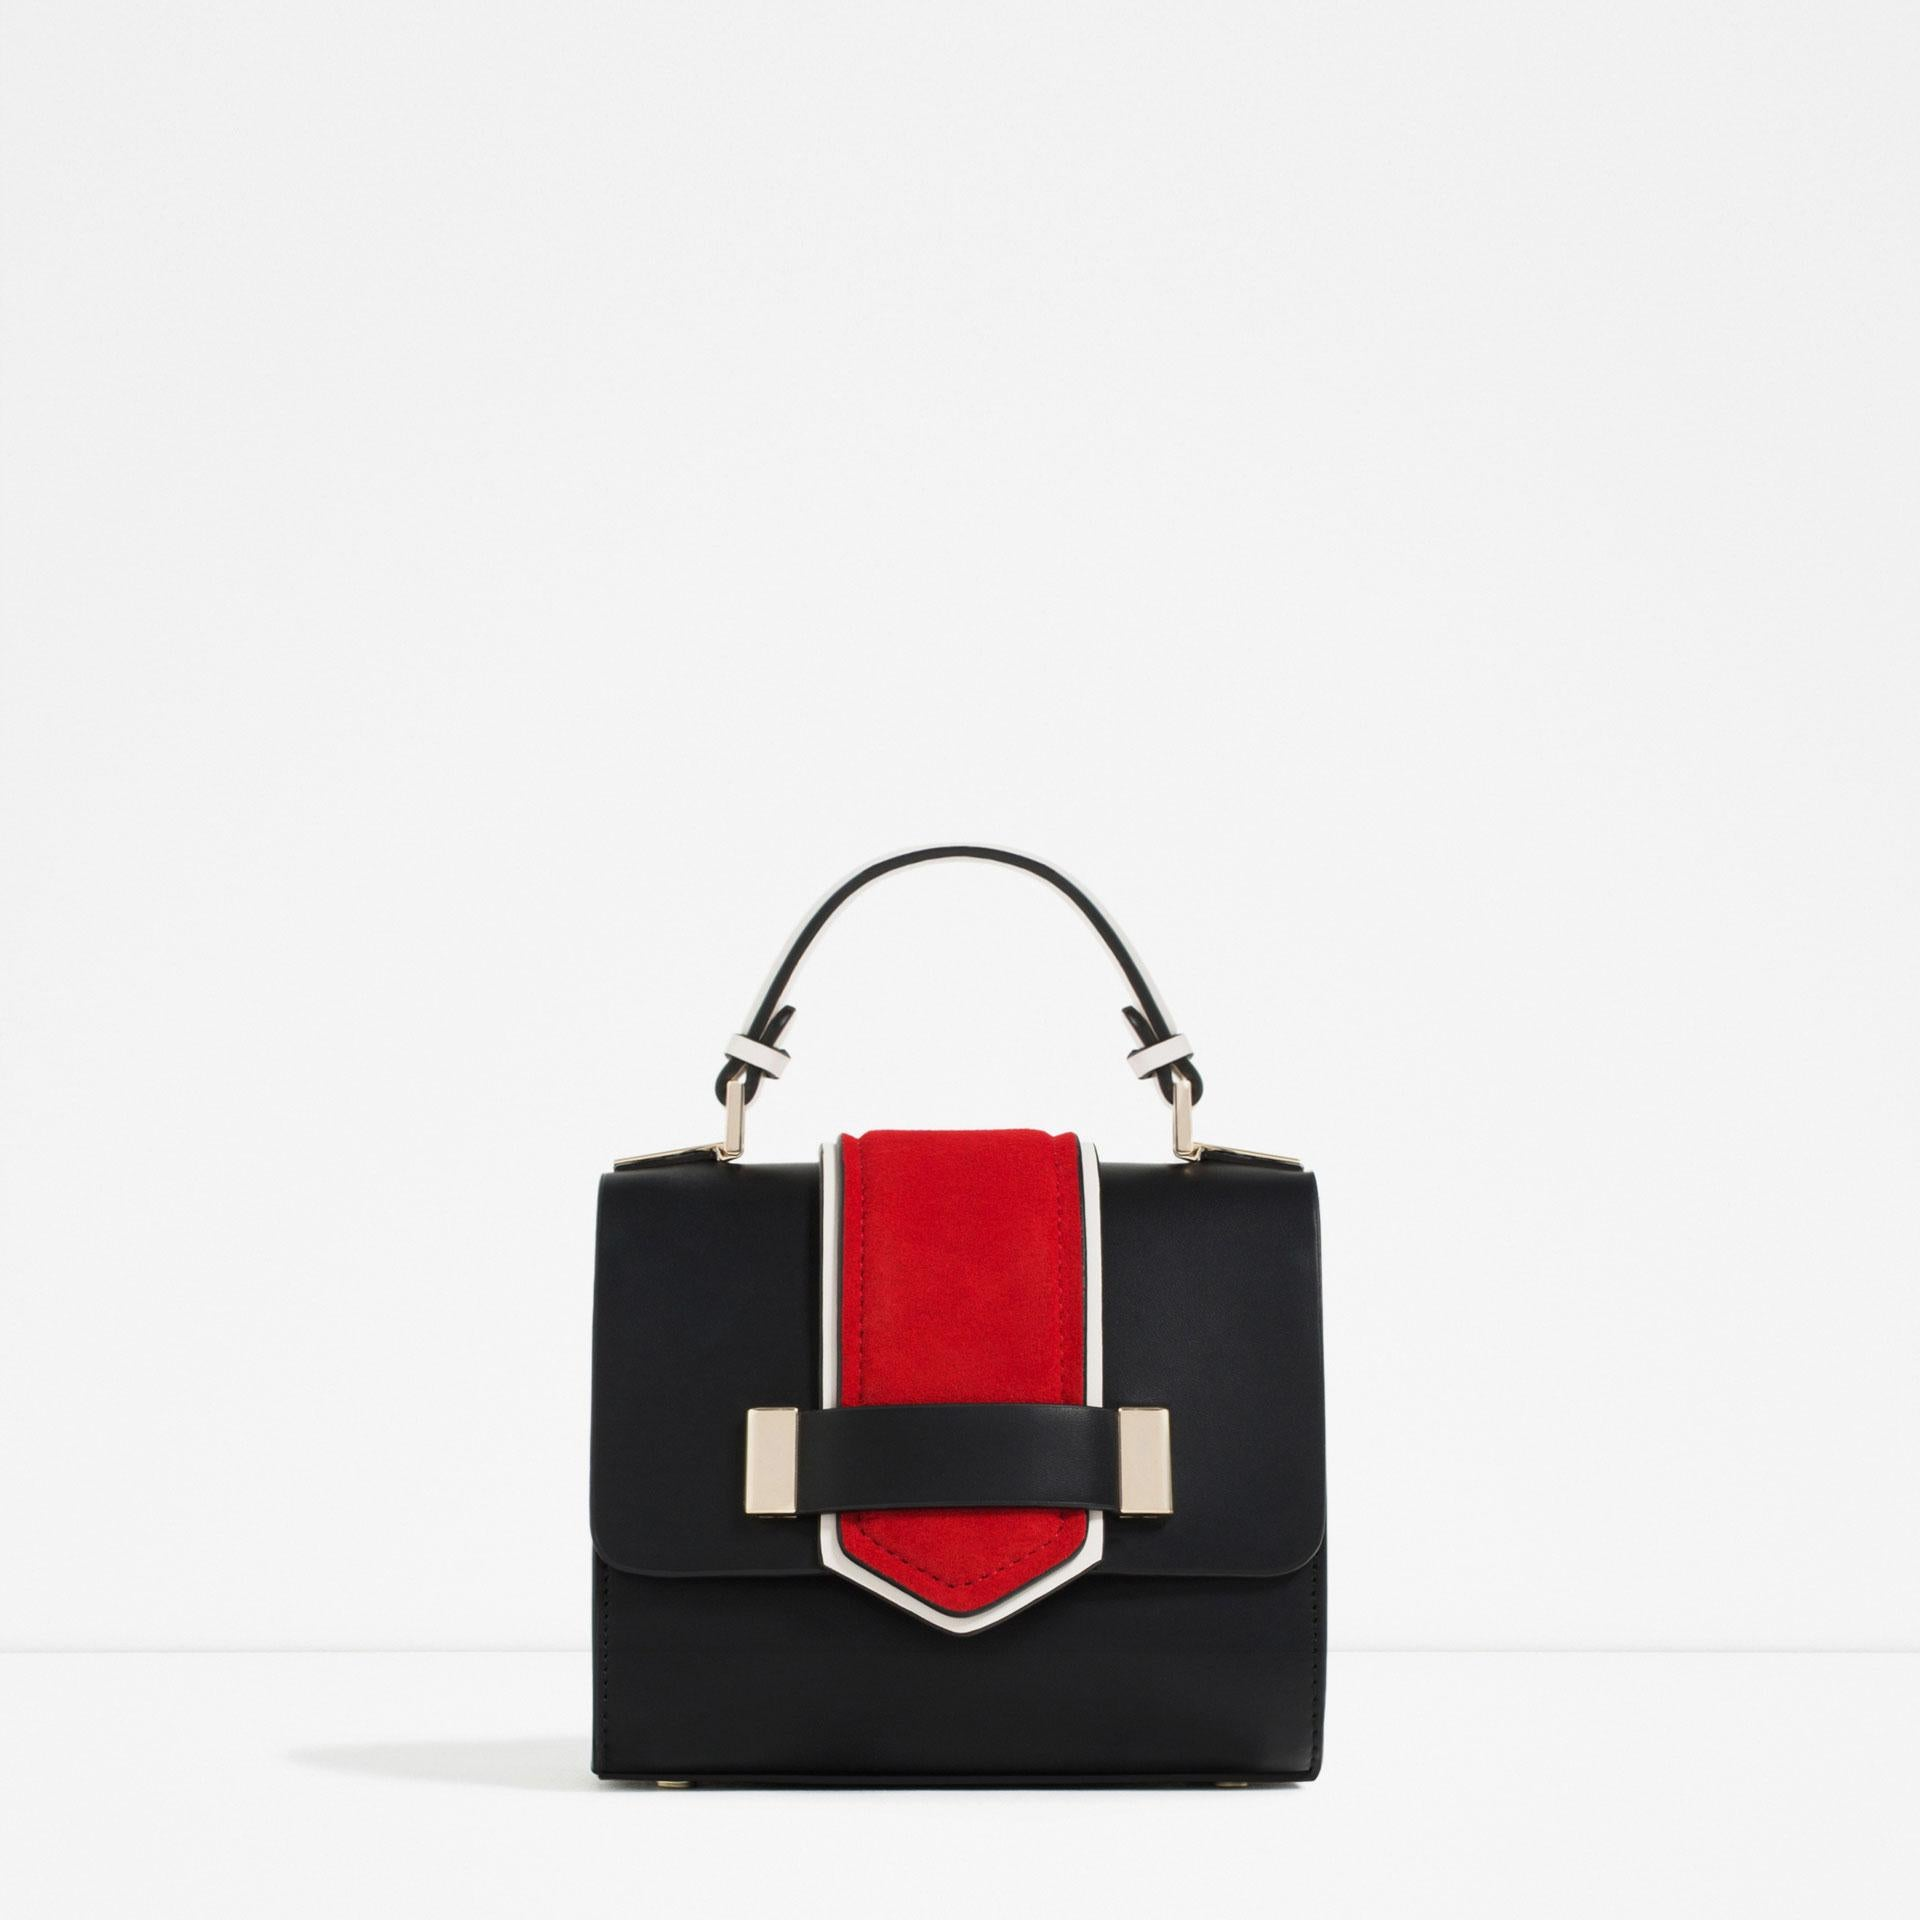 Mini Handbags For A Price 13 Tiny Bags You Can Buy Under Zara Double Strap Bag Contrast City 2999 From